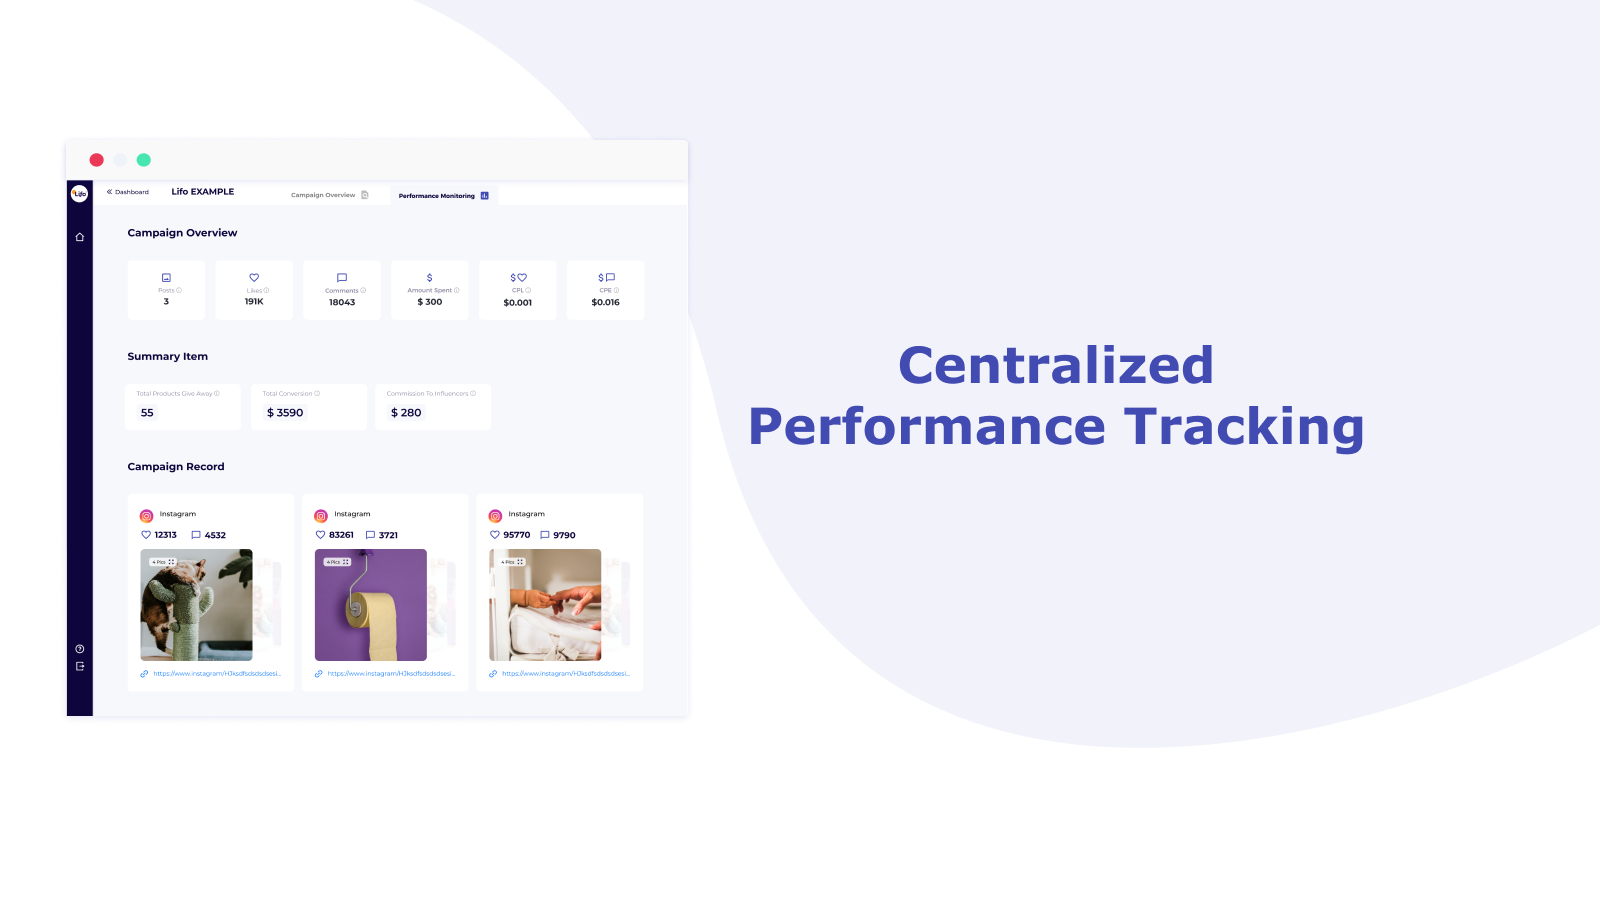 7 days turn around time for systematic performance tracking